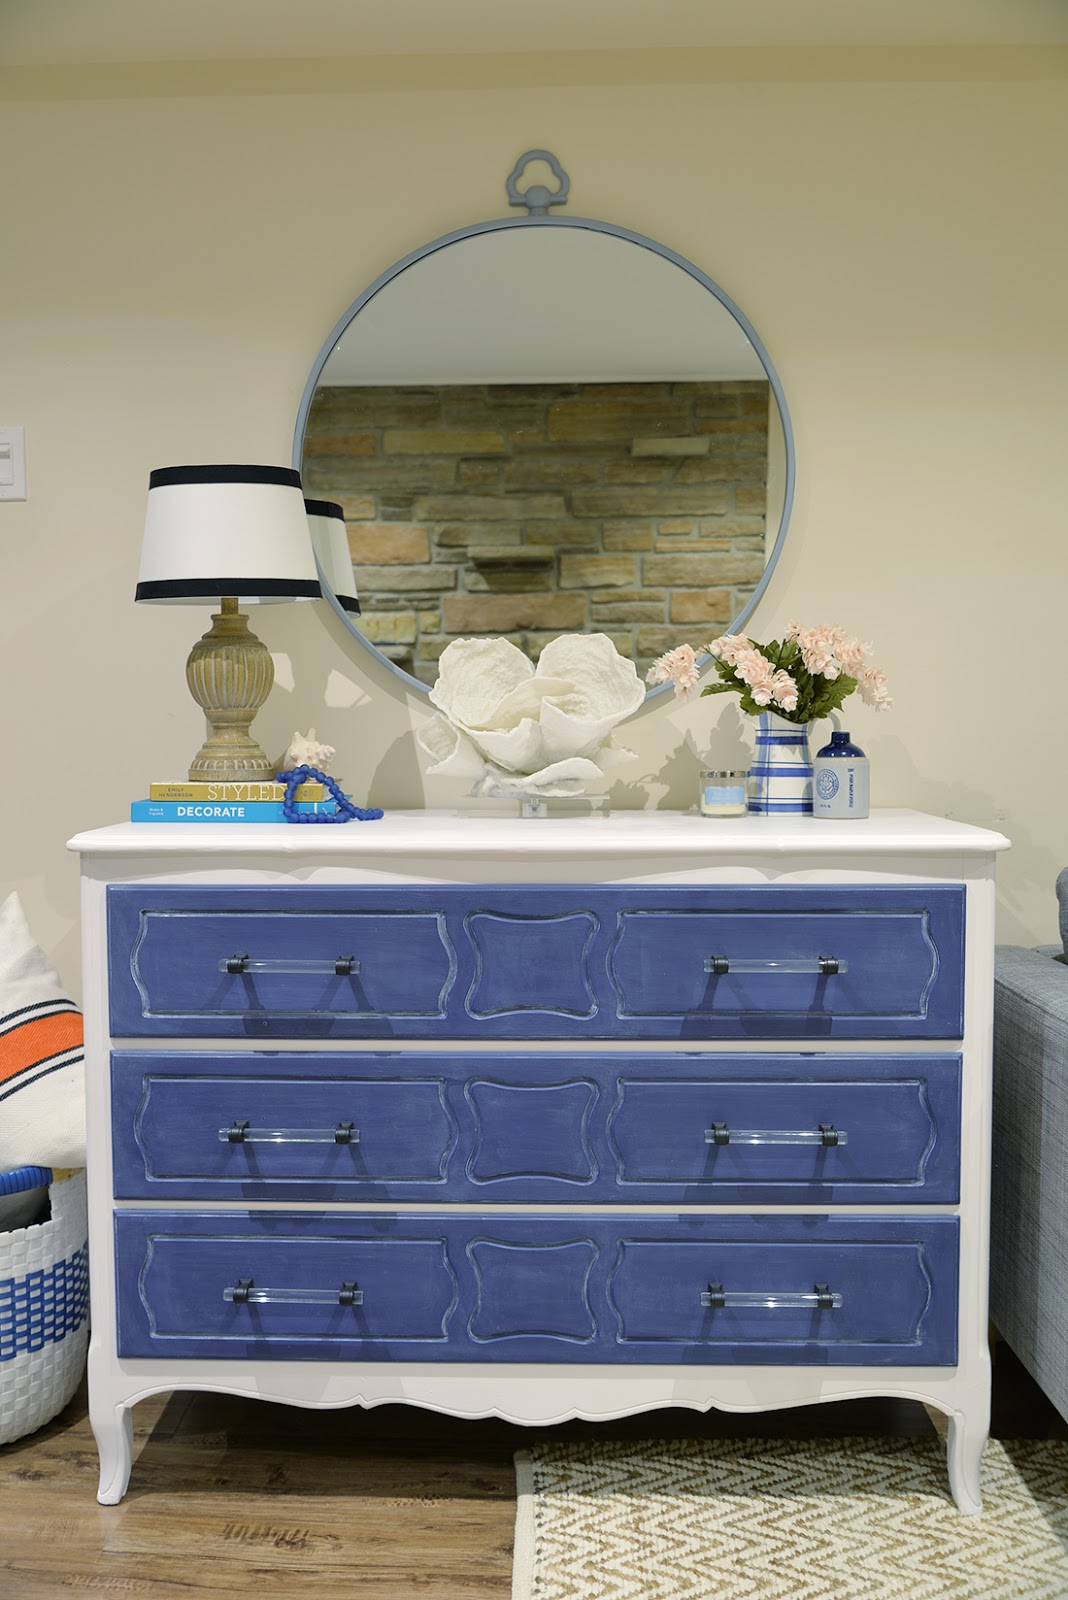 how to paint furniture with chalk paint, behr chalk paint, chalk paint aerosol, chalk paint wax